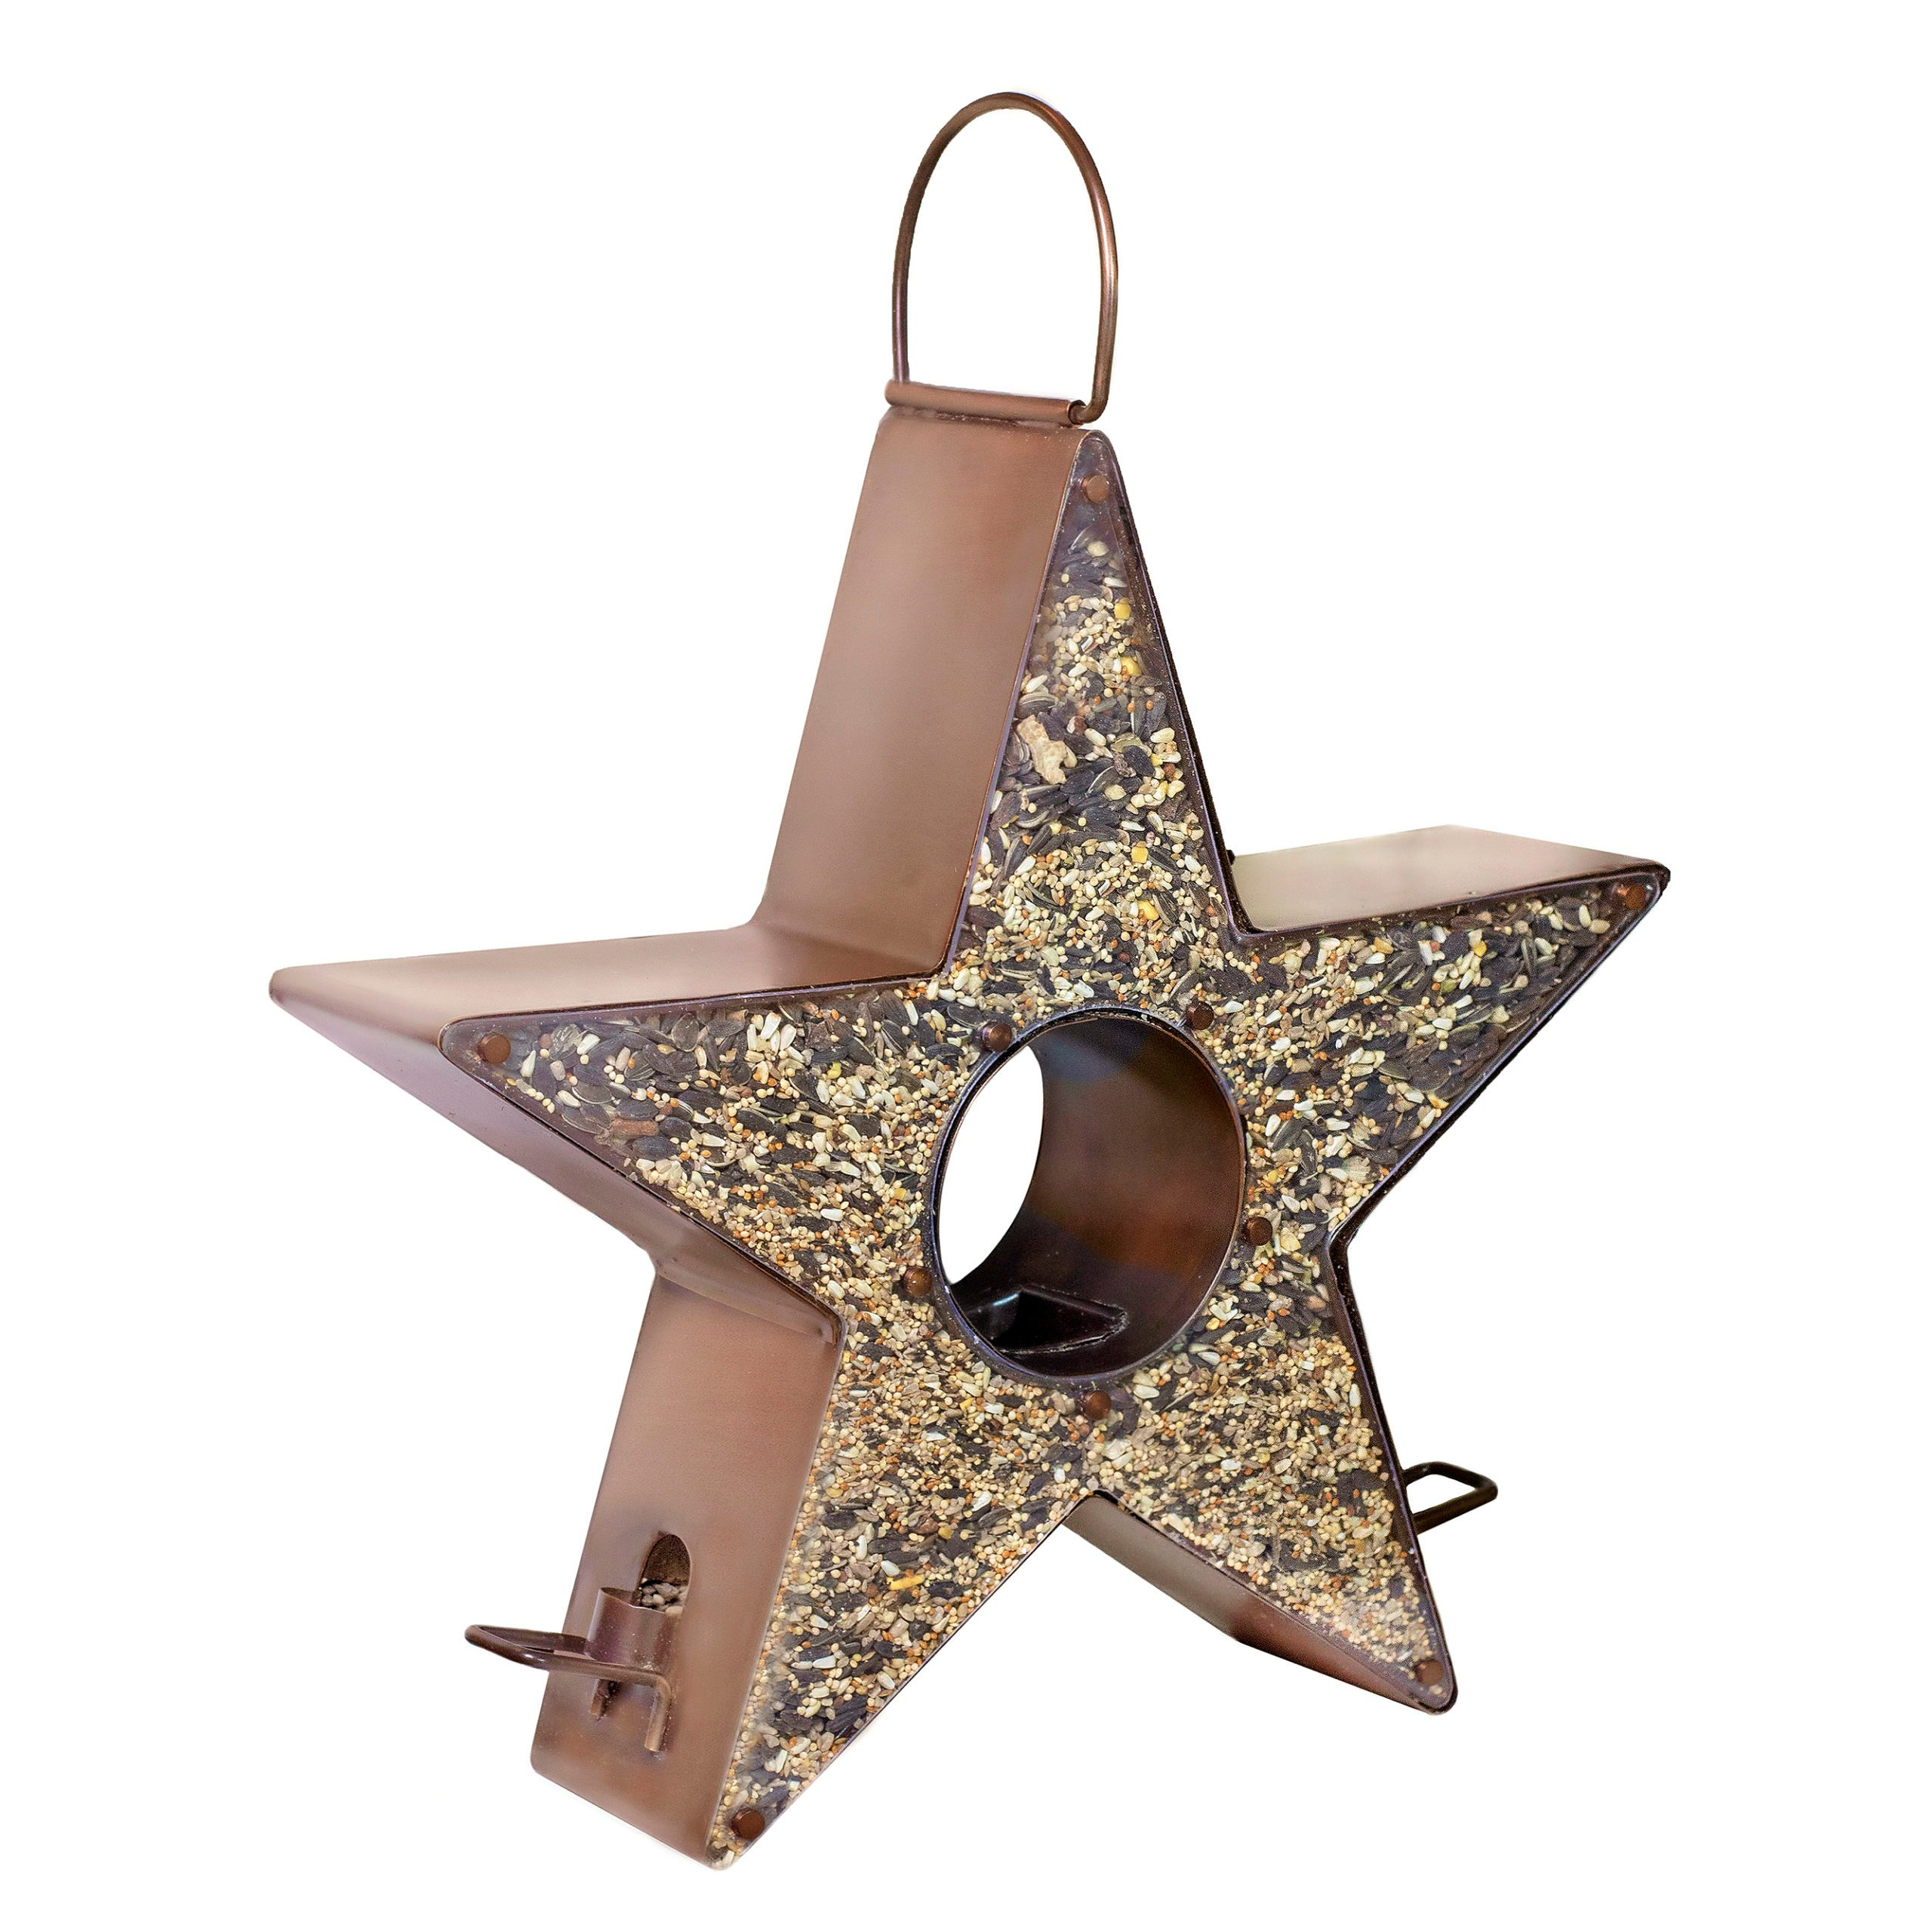 A star-shaped feeder with copper-colored sides and opening in the middle.